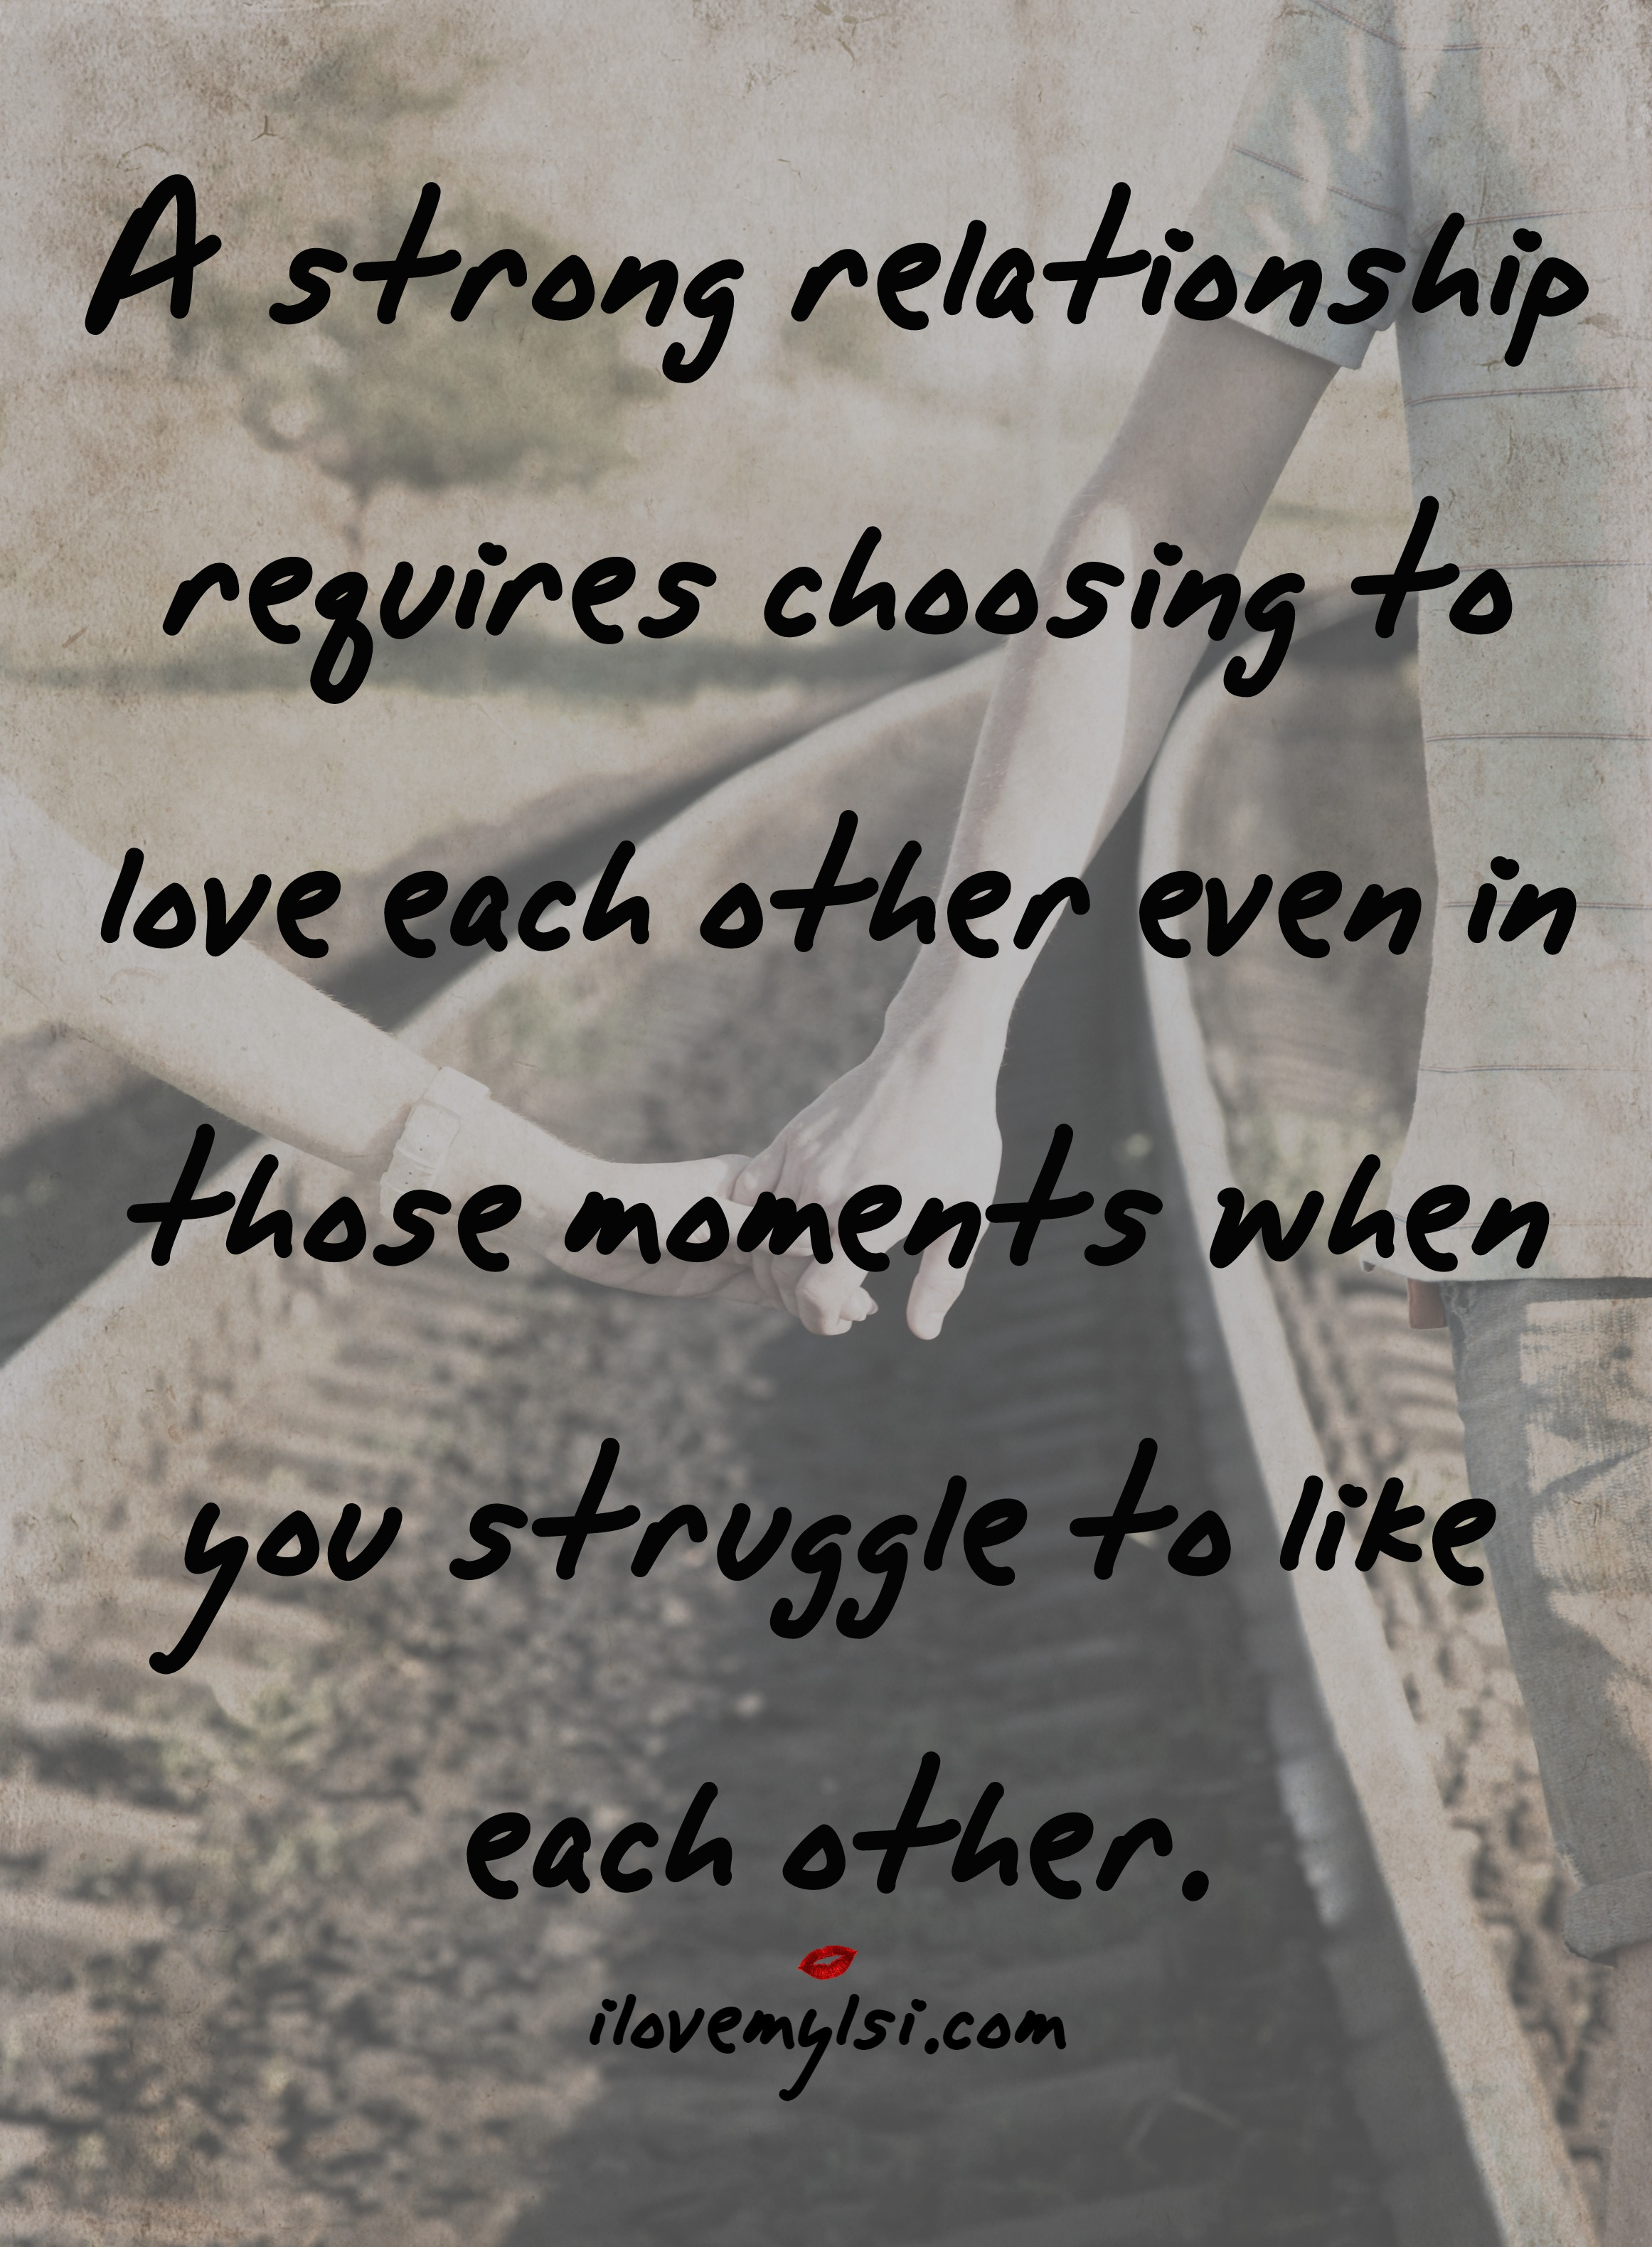 Love Relationships Quotes That Will Inspire You: A Strong Relationship Requires Love